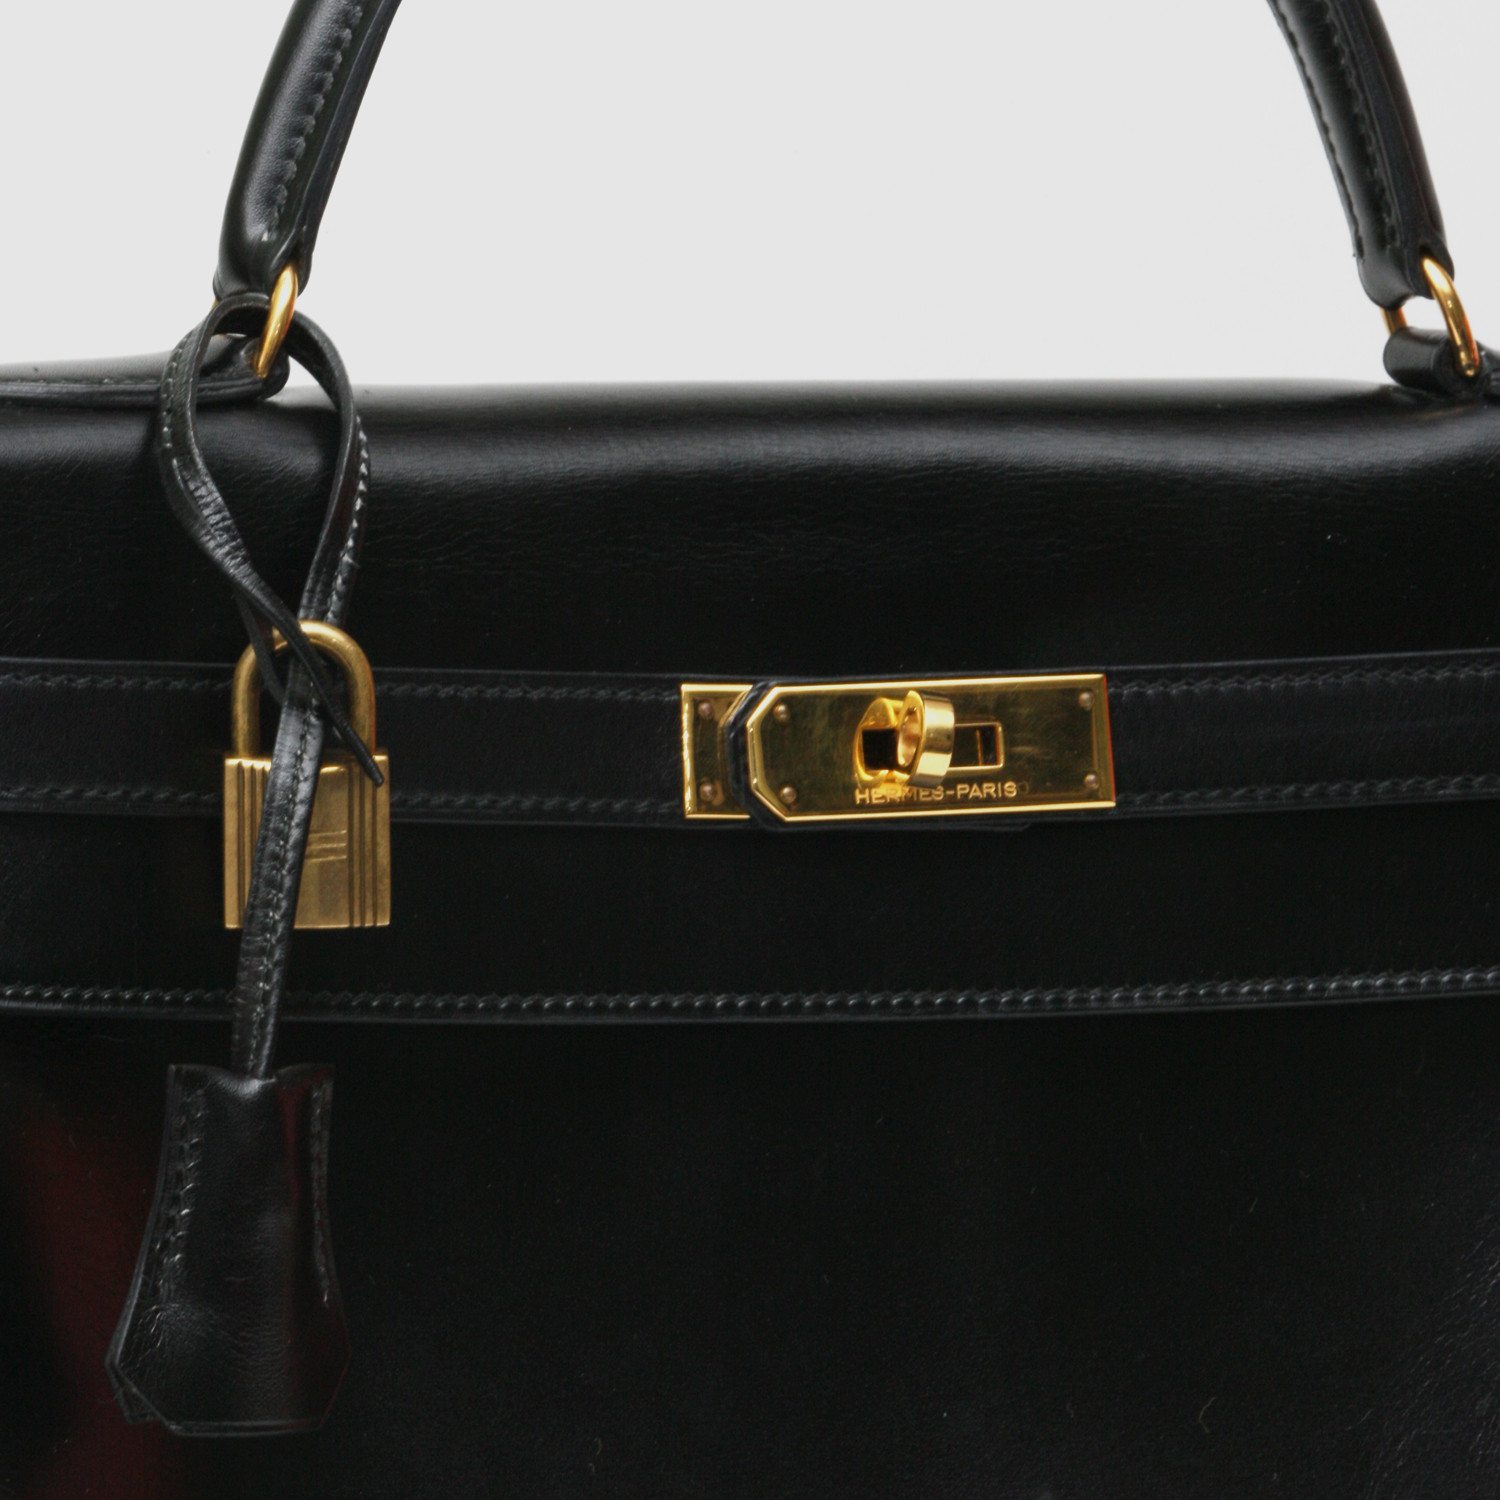 knock off hermes - Herm��s Kelly Black Box Calf Leather Bag - Vintage Herm��s - Touch ...